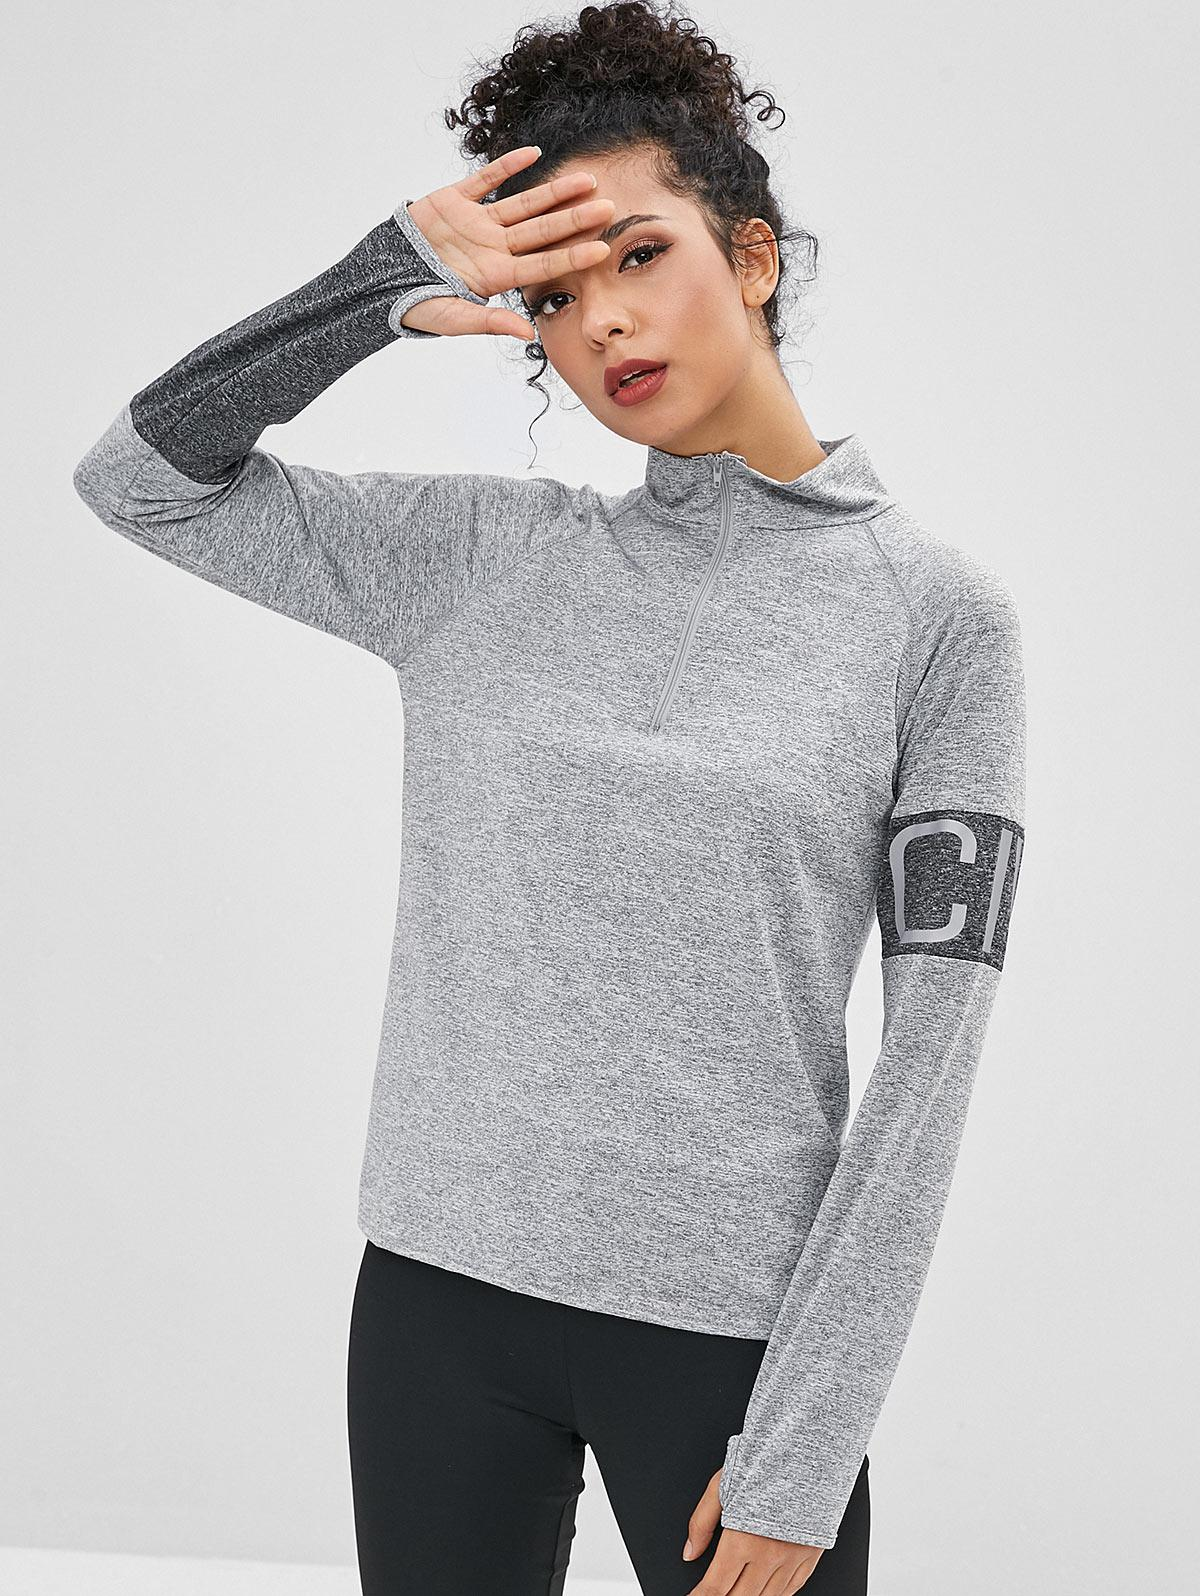 Zipper Letter Graphic T-shirt with Armhole, Gray